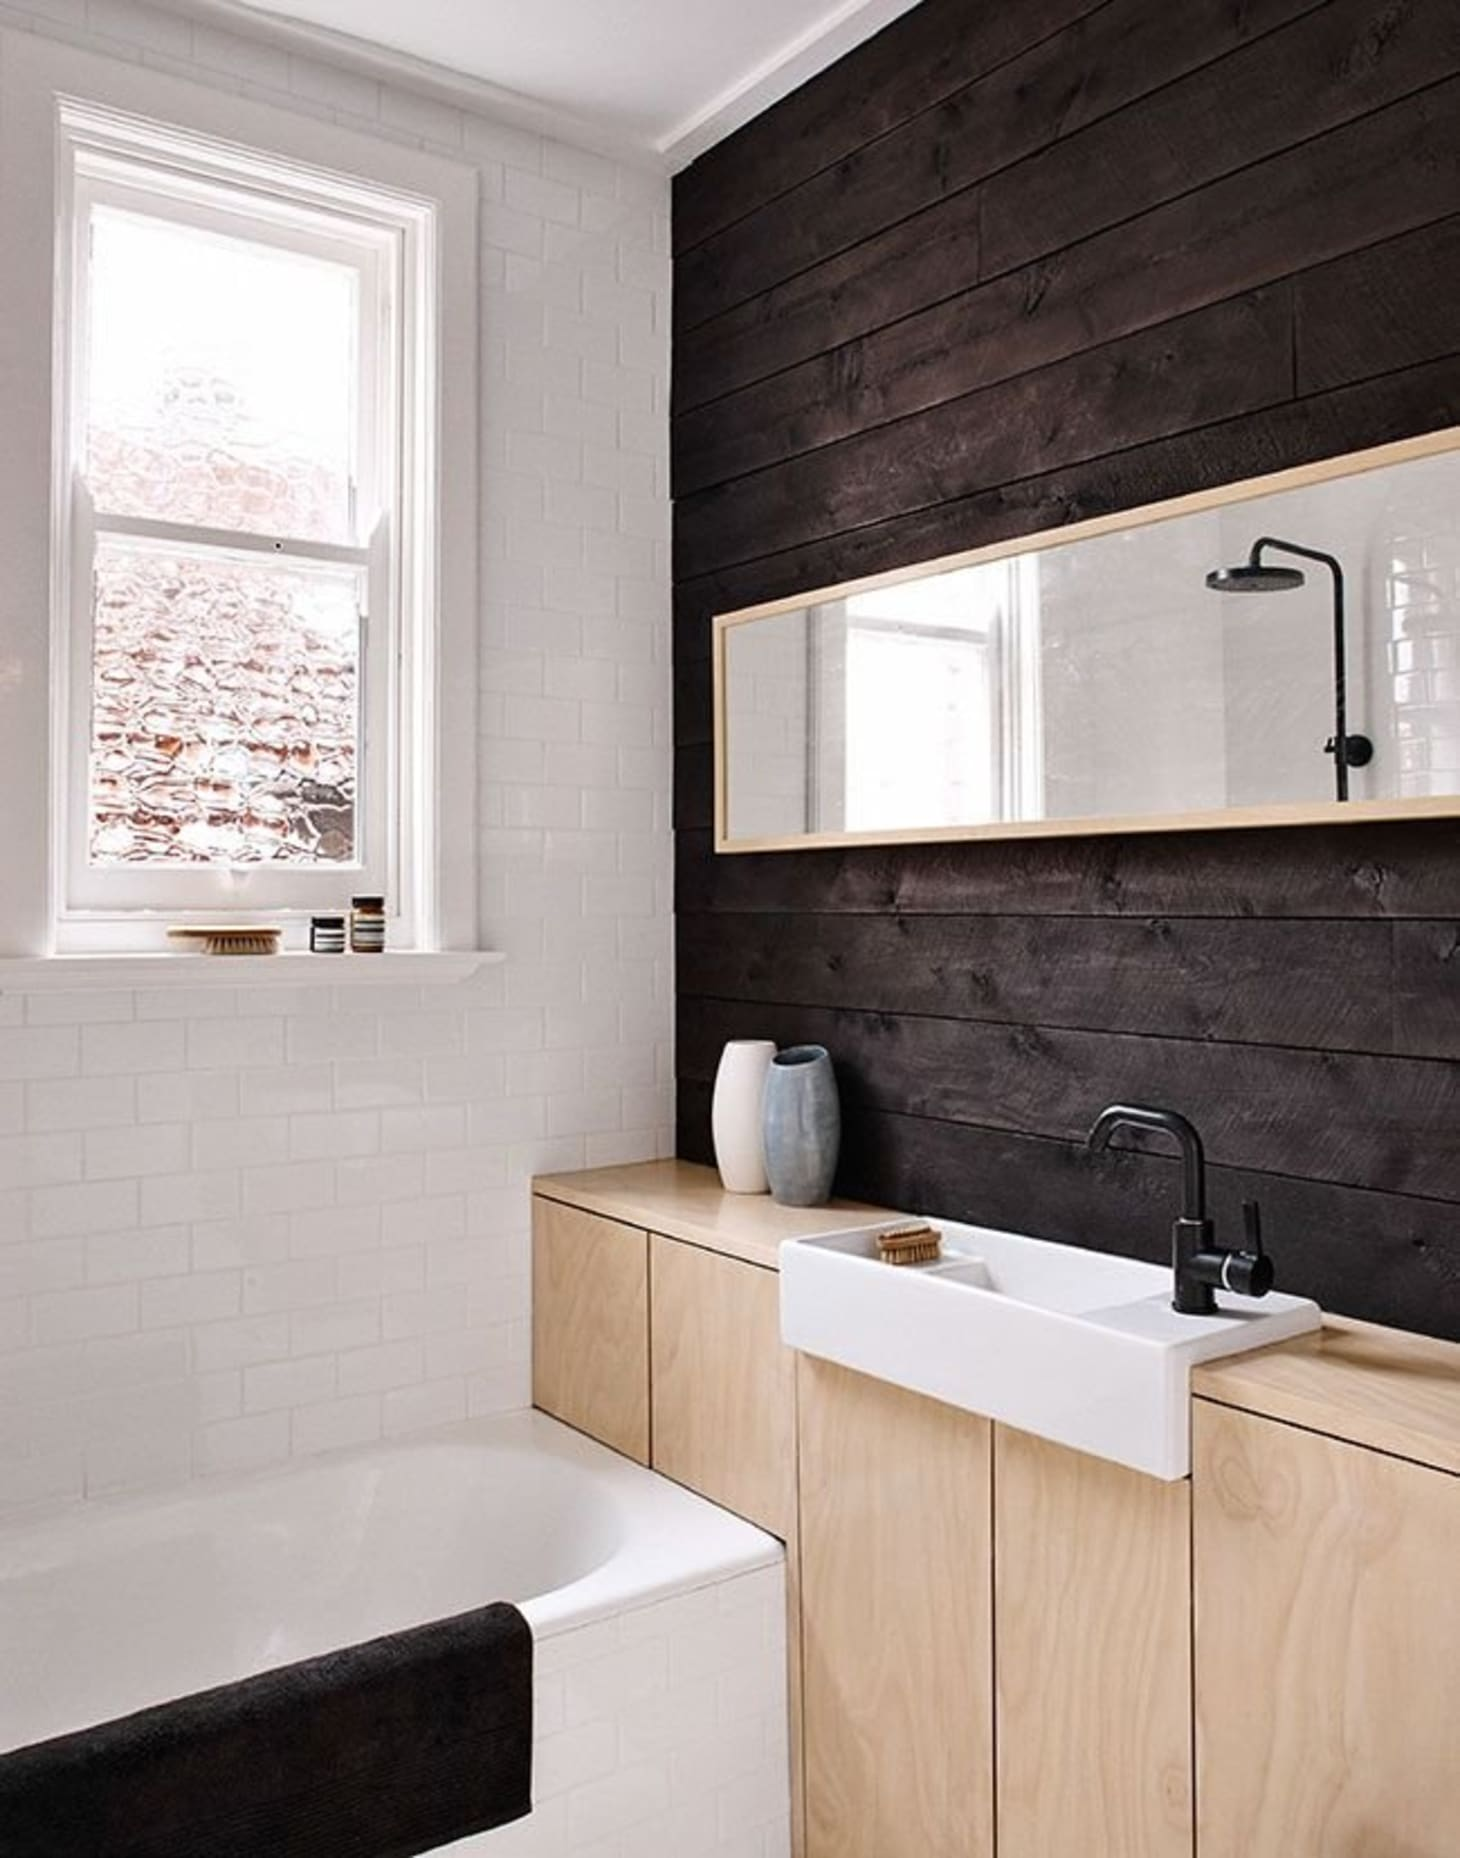 7 Small Bathroom Remodel Ideas - Renovation Pictures of ...